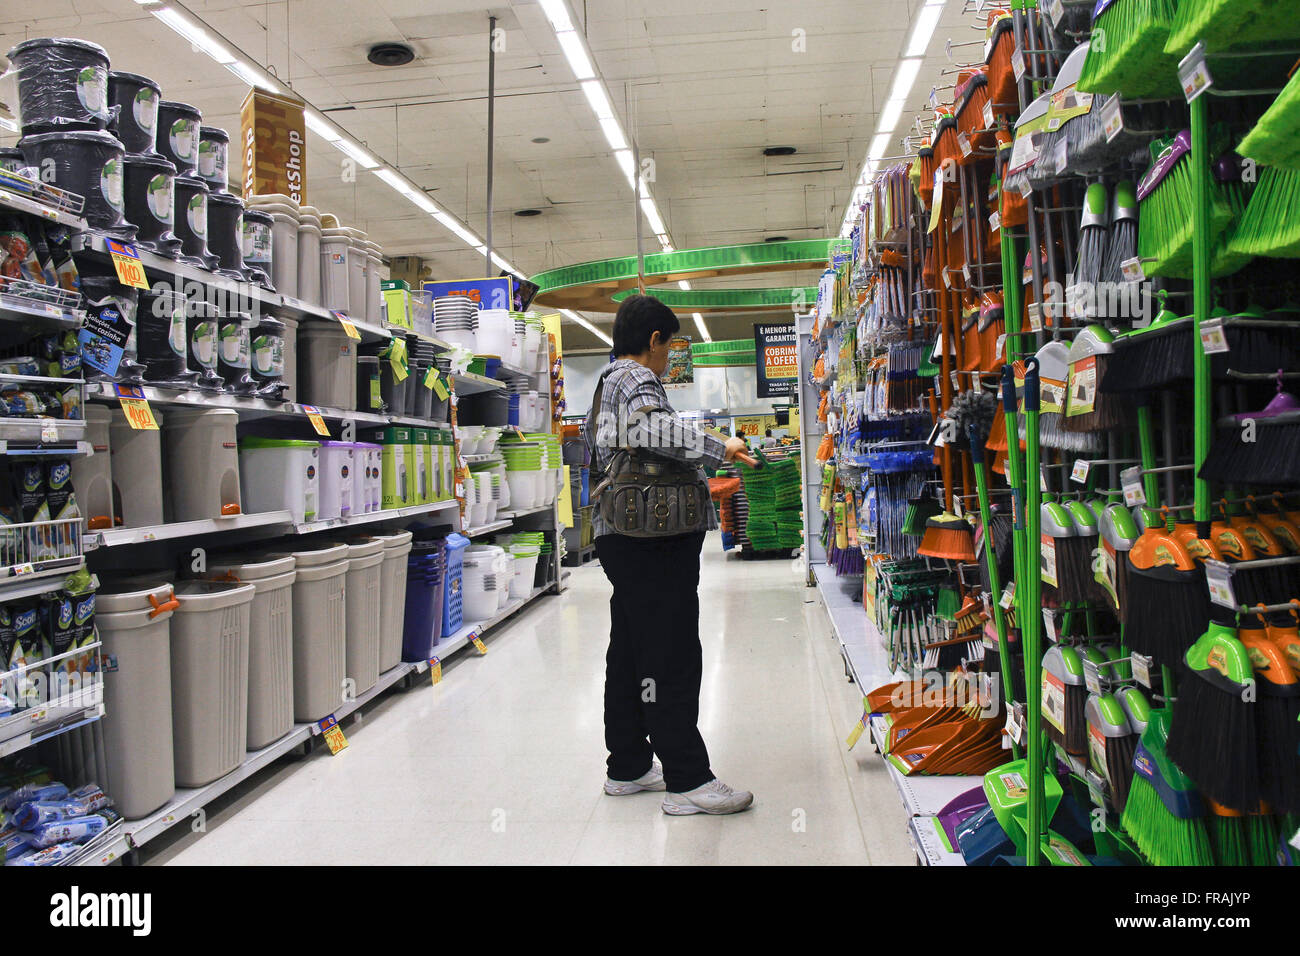 Domestic utilities sector in the city supermarket - Stock Image